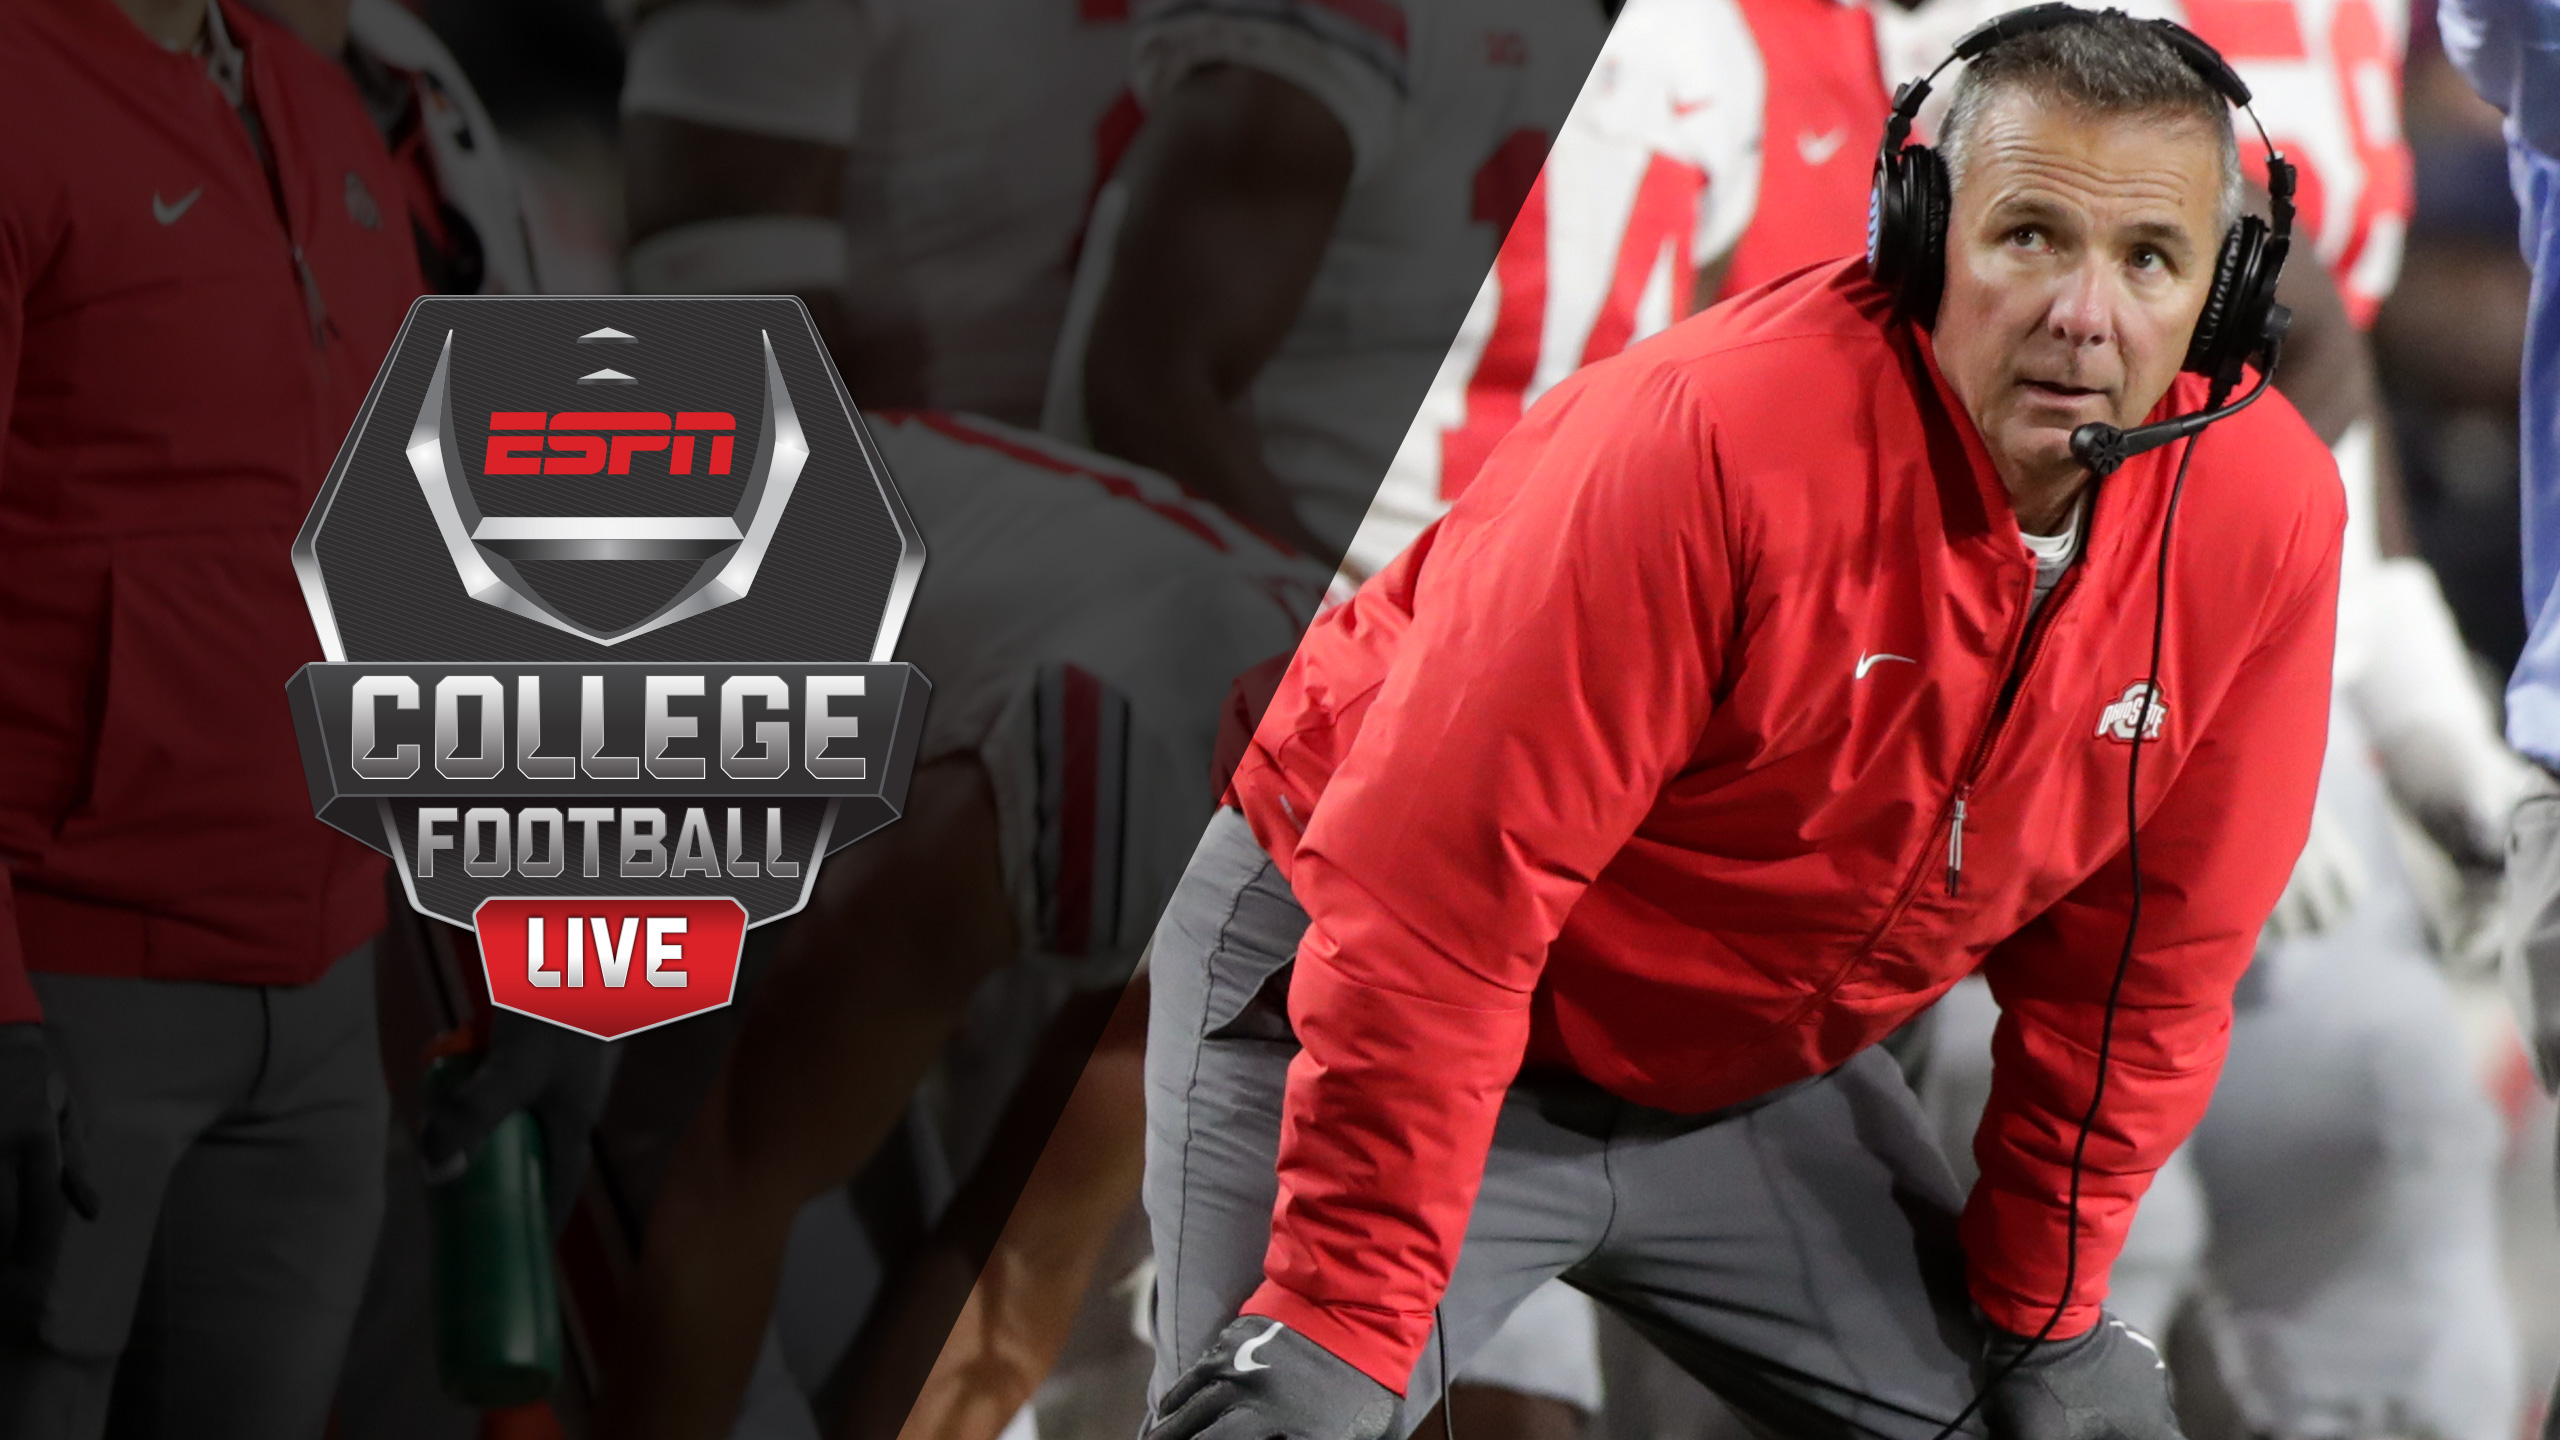 Mon, 10/22 - College Football Live Presented by ZipRecruiter